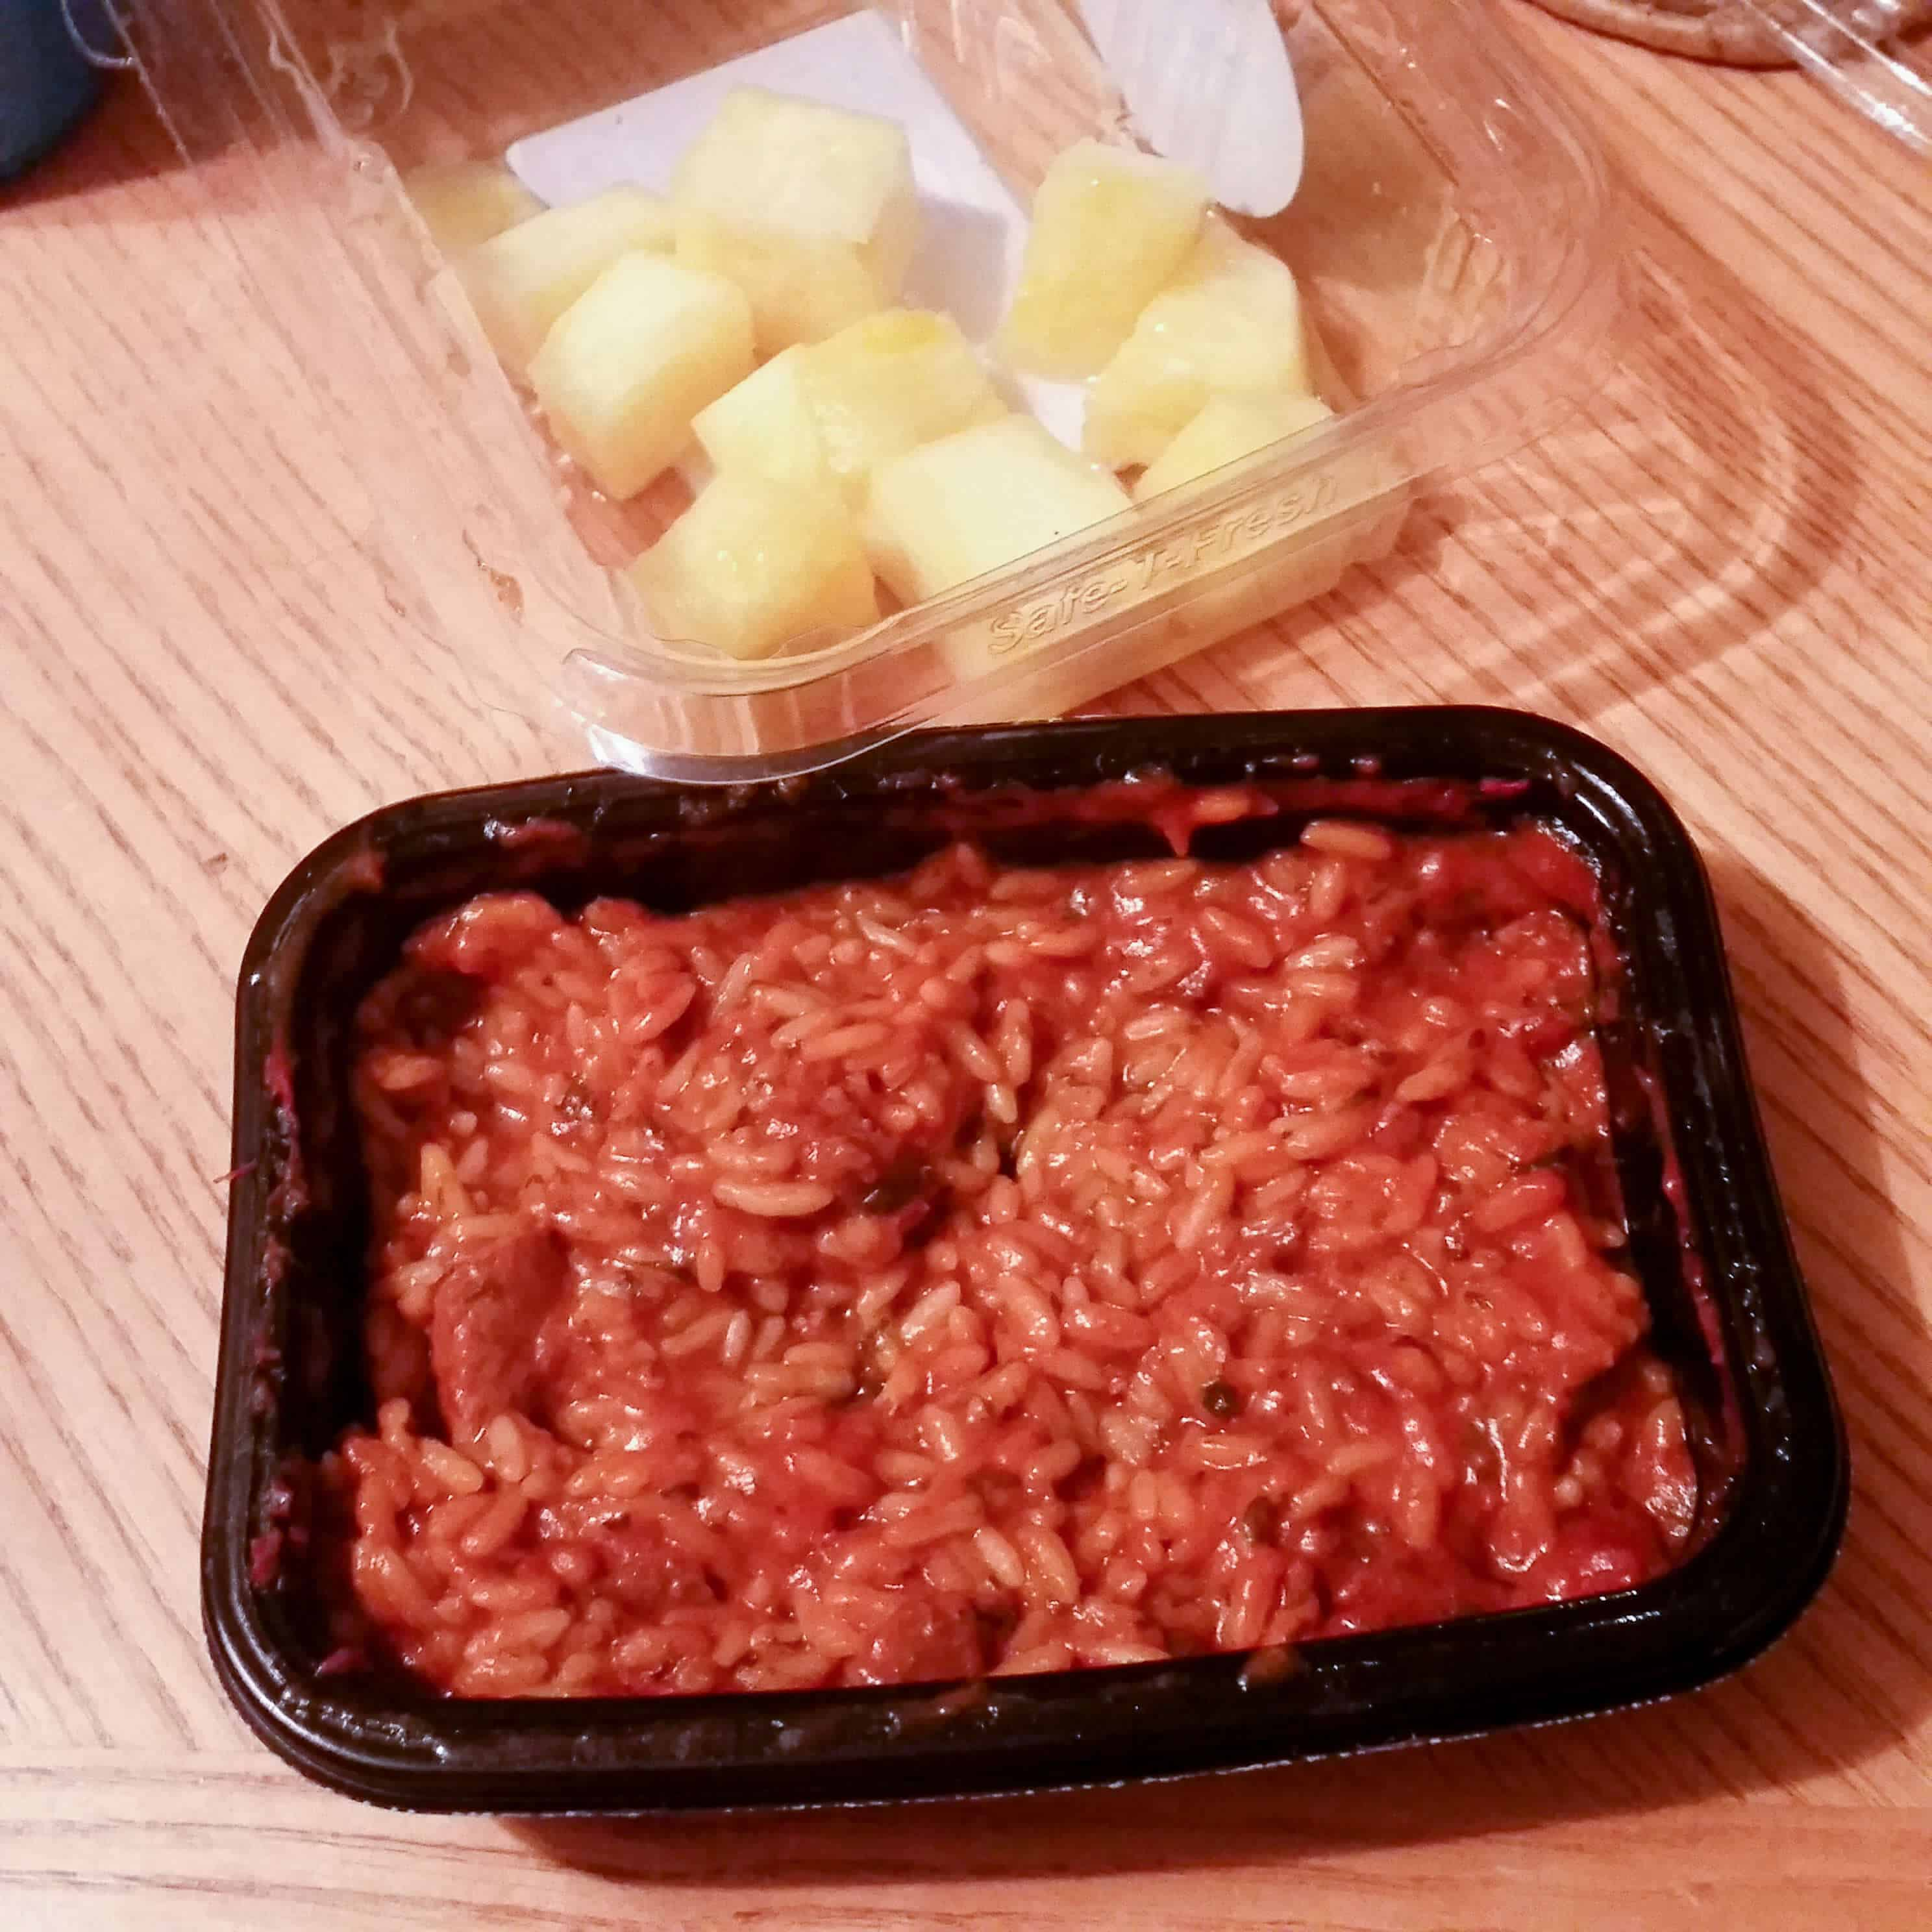 Spicy food next to container of pineapple chunks.